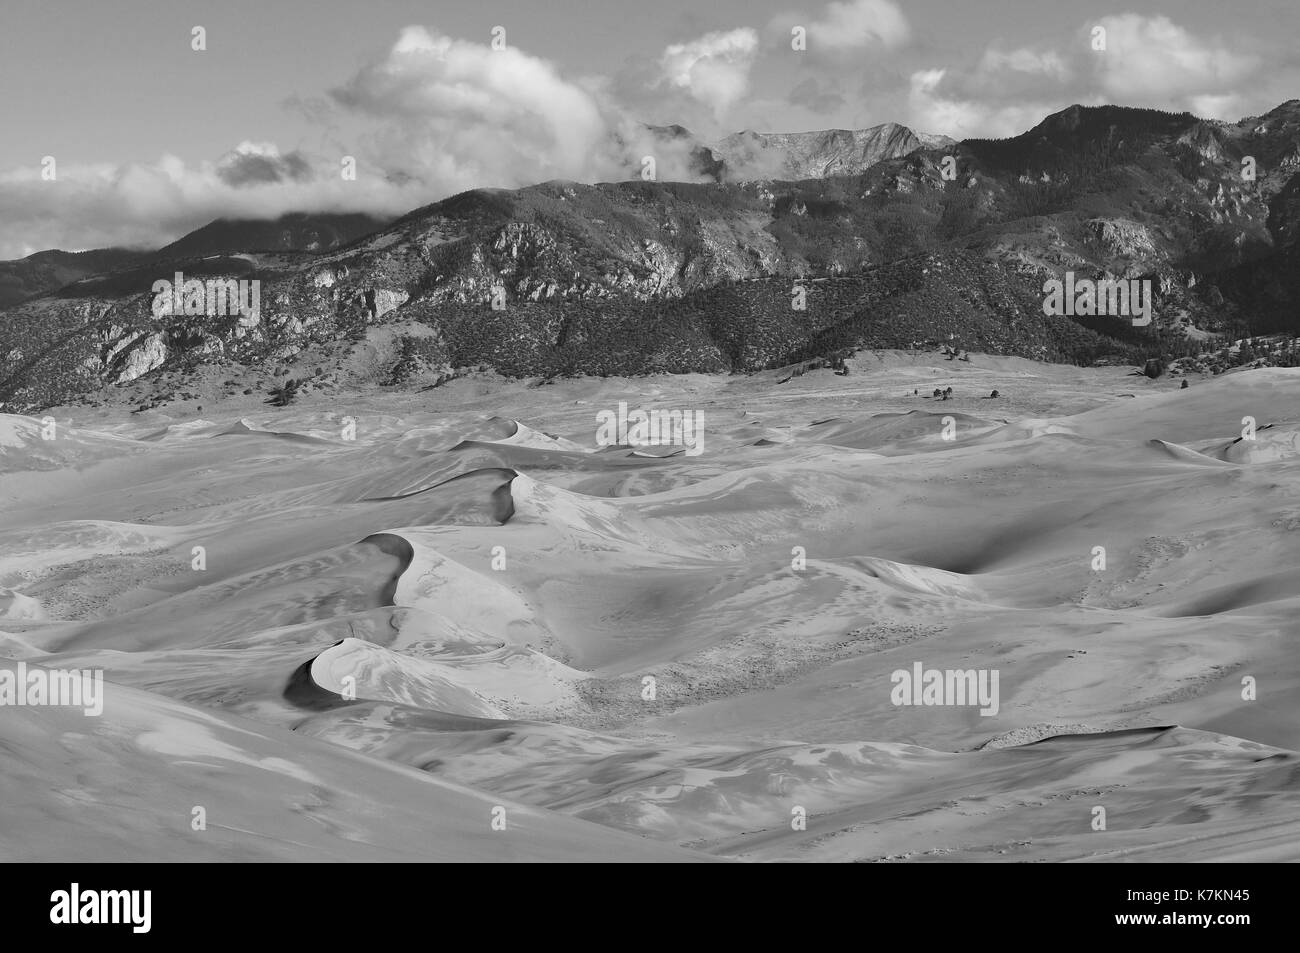 Sand dunes and mountain landscape - Stock Image